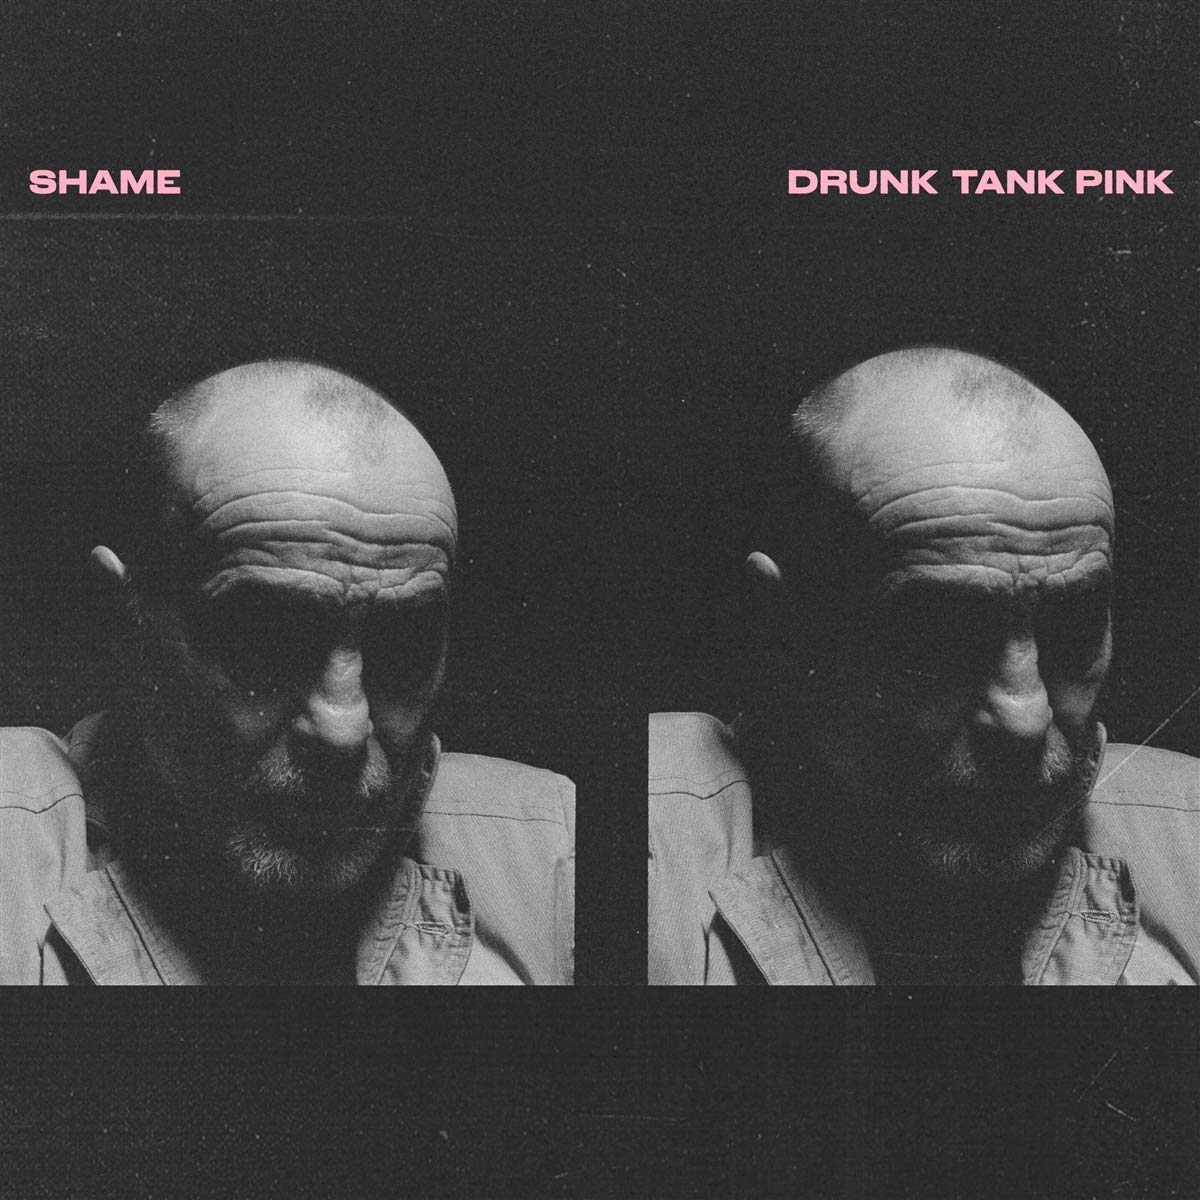 """Shame - Drunk Tank Pink [82]   @shamebanduk  """"Drunk Tank Pink' confirms Shame's status as one of the most exciting bands at the forefront of British music."""" - NME"""